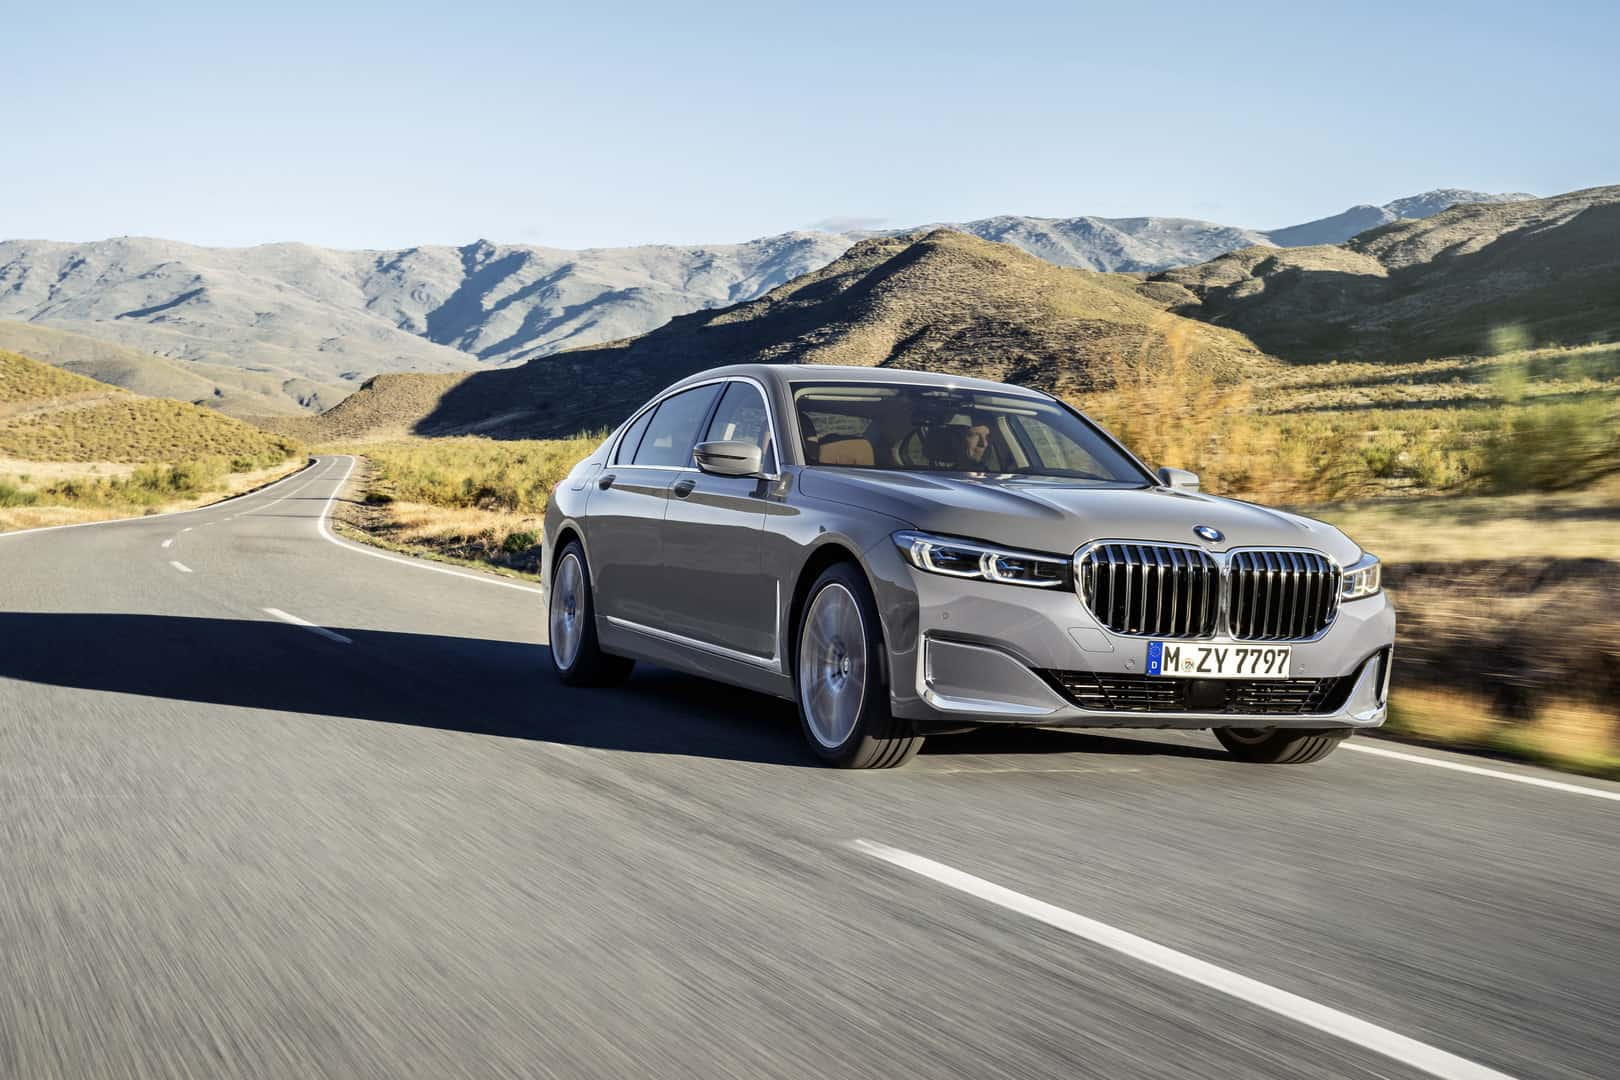 Bmw Has Officially Taken The Wraps Off The New 7 Series Facelift